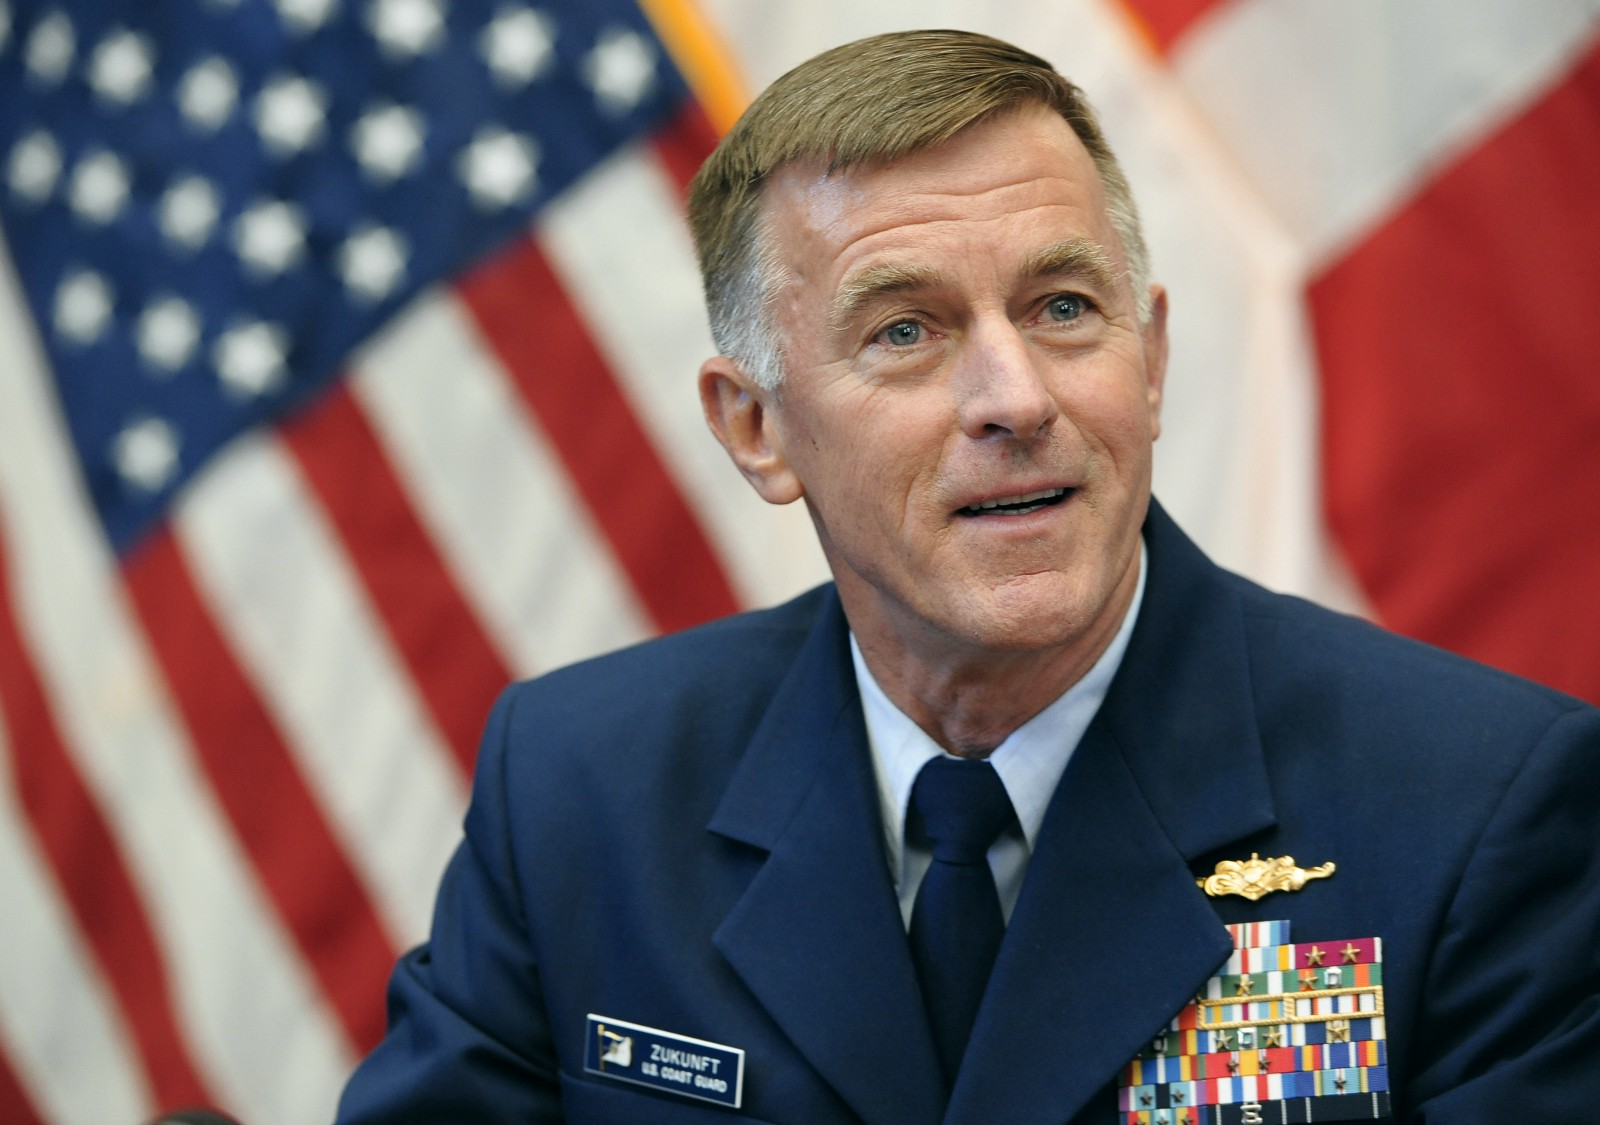 Shot fired: Coast Guard Commandant 'will not break faith' with trans members